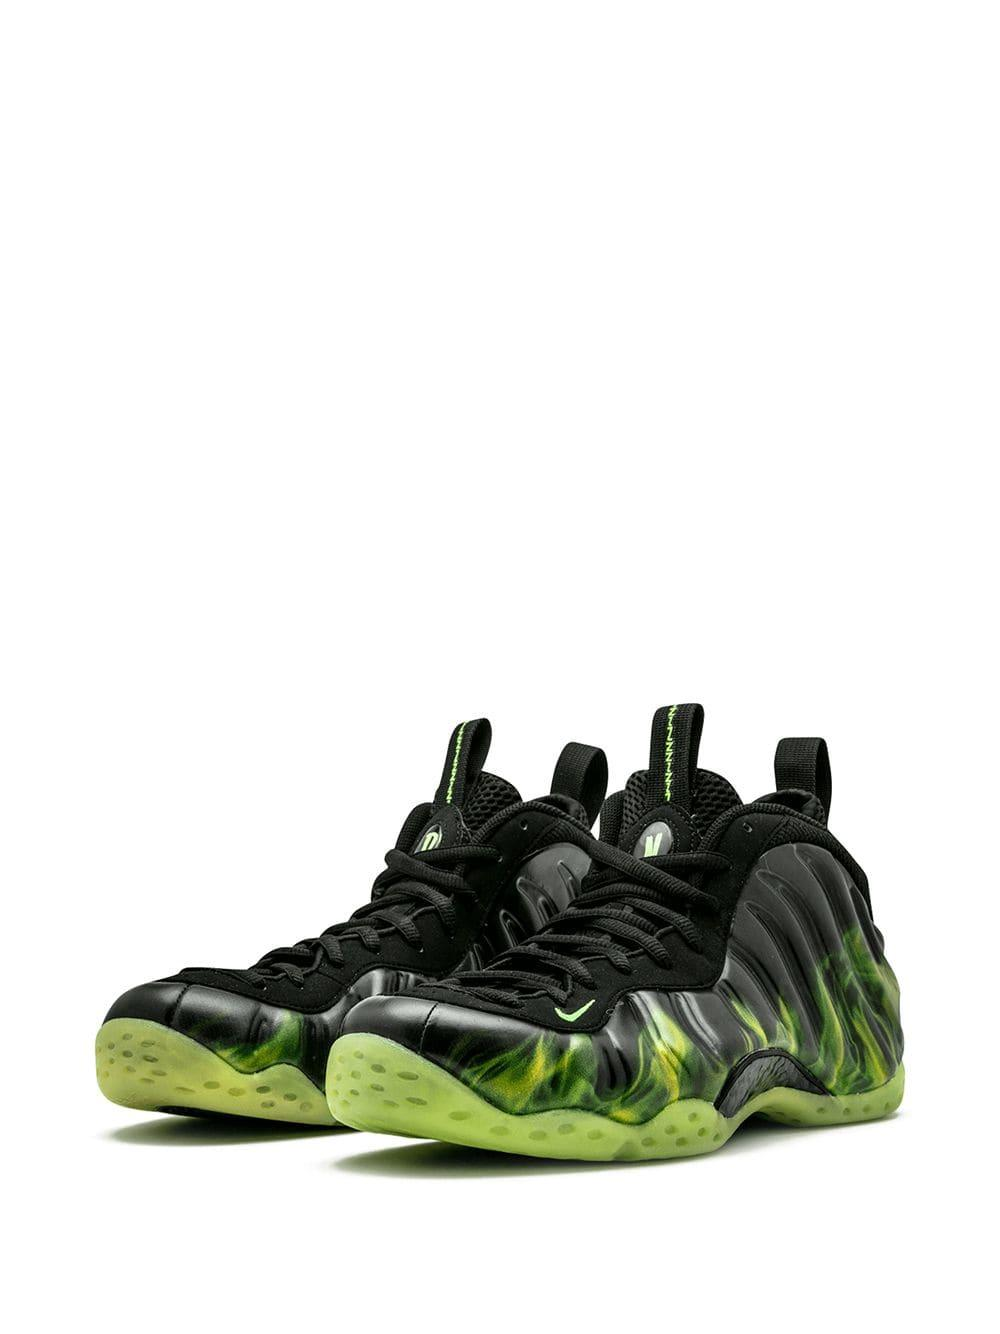 reputable site 2ffd3 da6d8 Nike Air Foamposite One Paranorman Sneakers in Black for Men ...